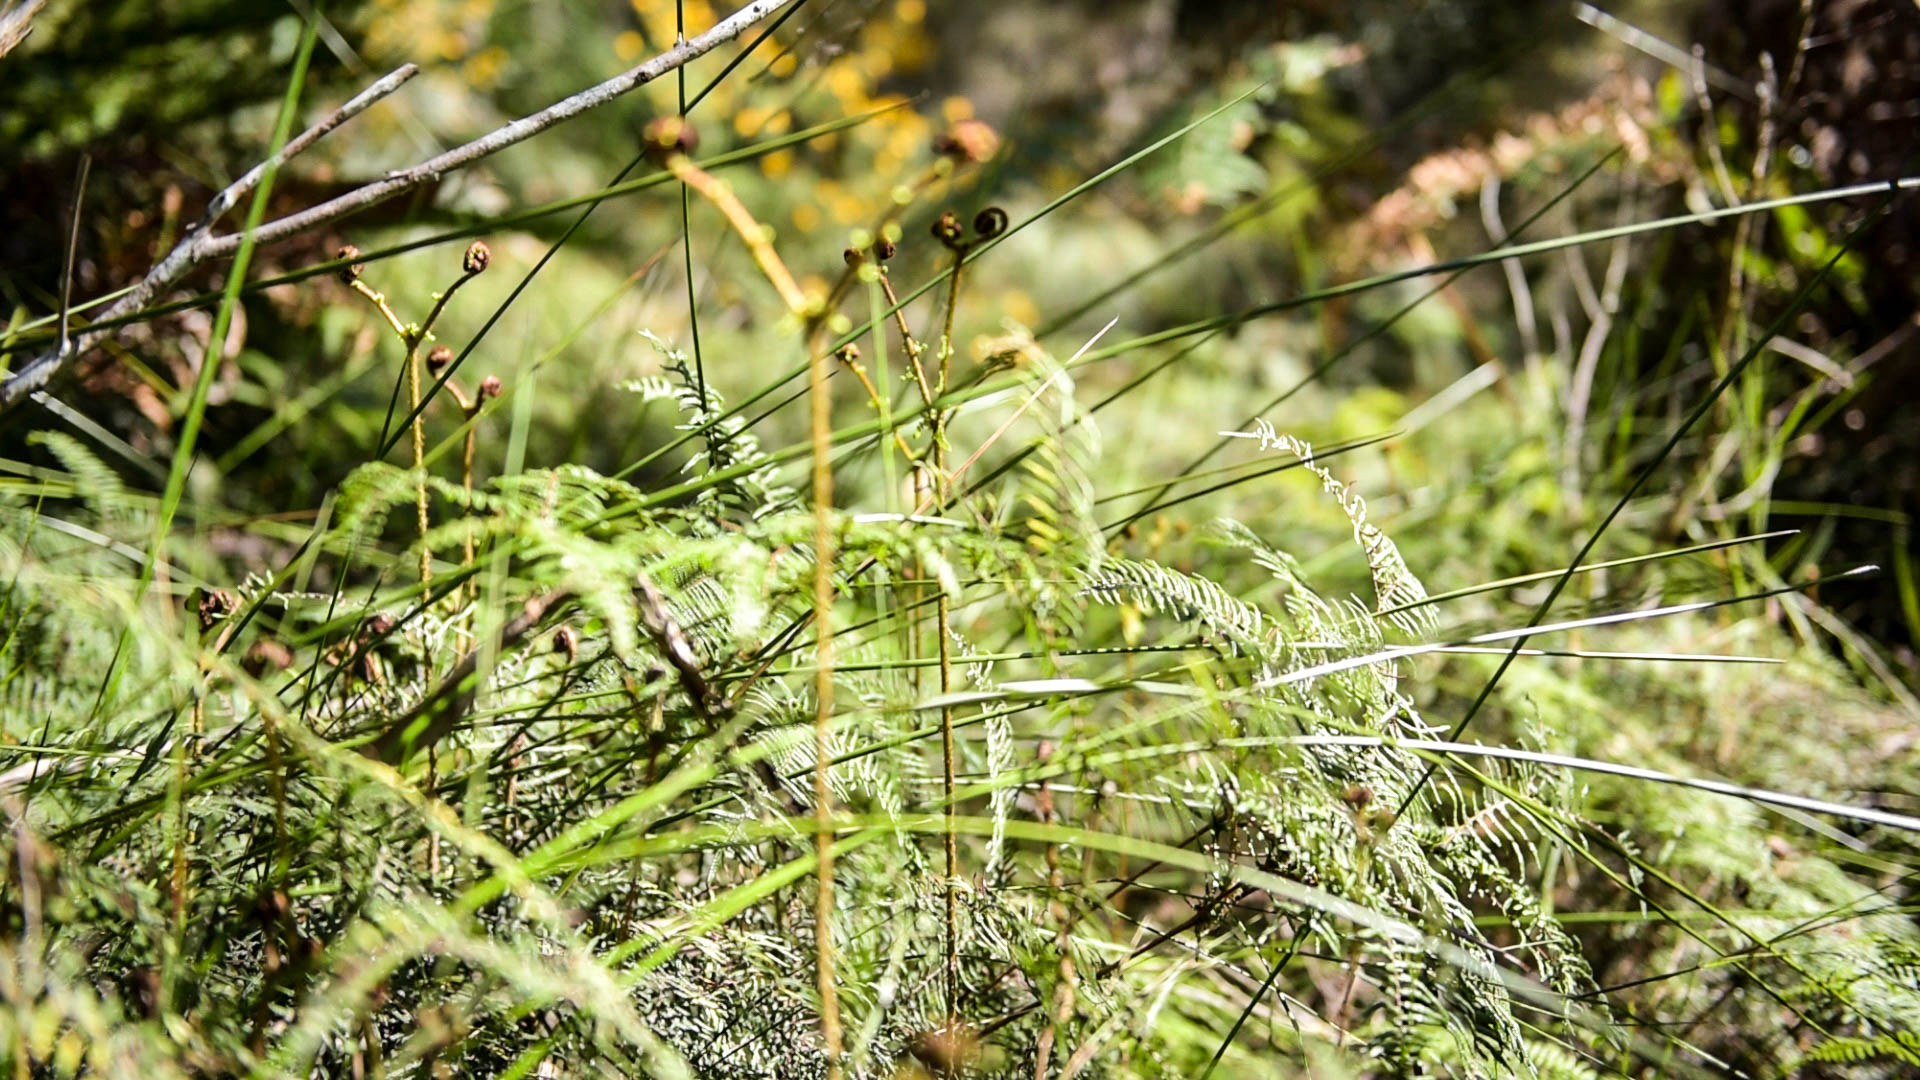 Sedges and ferns near Lawson Creek Photo: V Hong